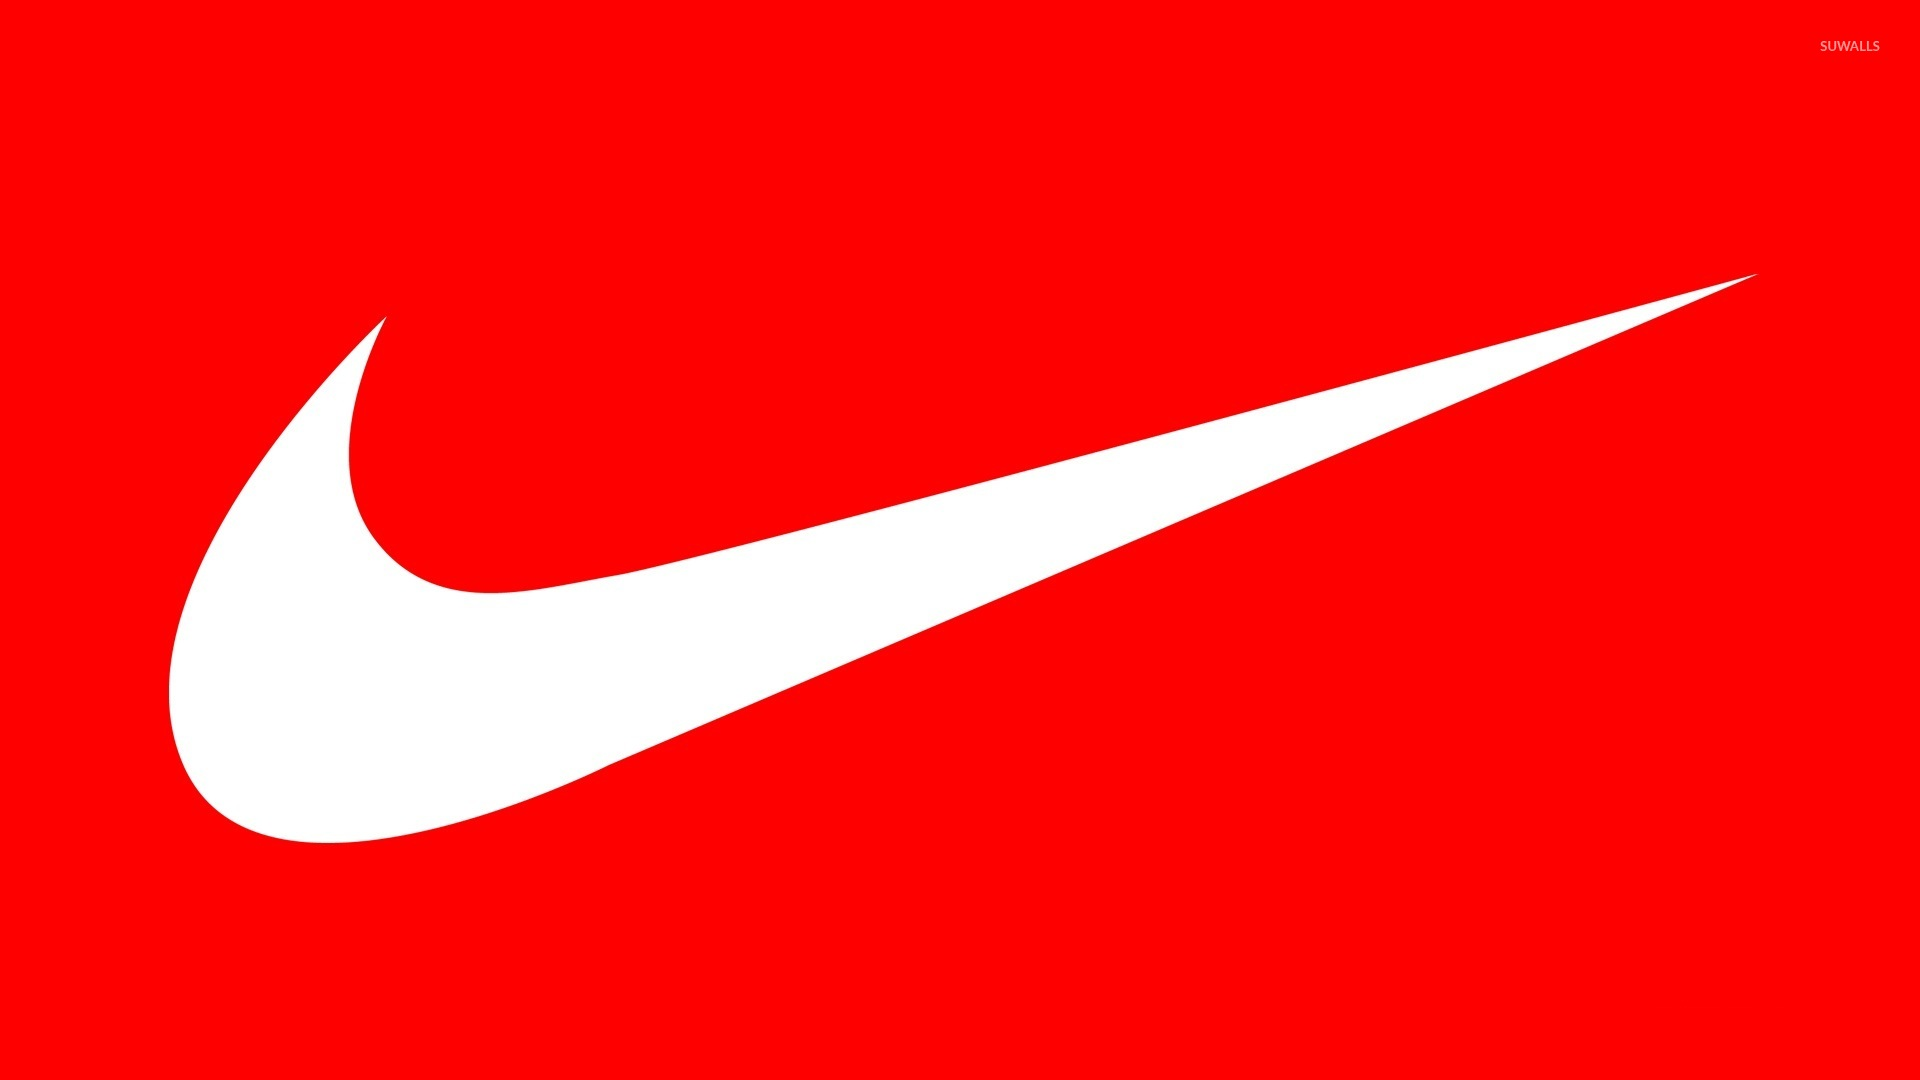 Popular Wallpaper Logo Nike - nike-logo-49027-1920x1080  Photograph_216772.jpg